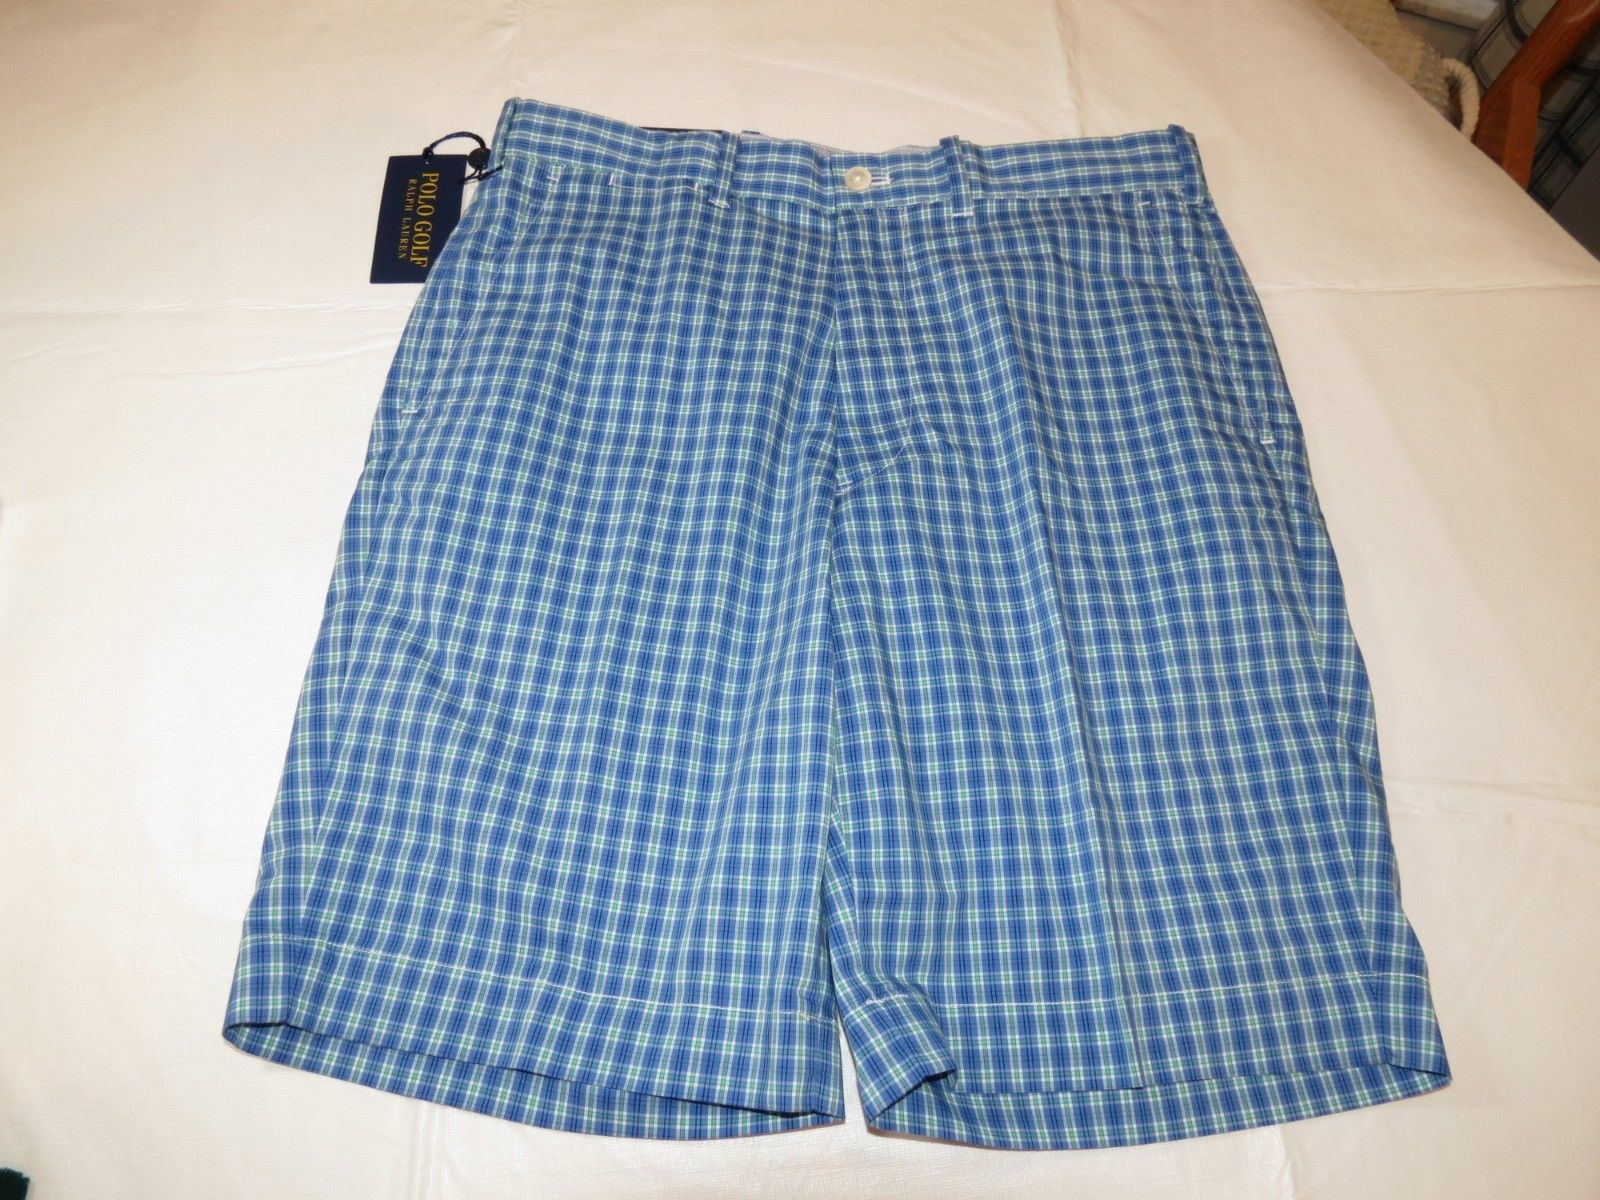 Primary image for Polo Golf Ralph Lauren Mens Shorts 40 Golf Classic Fit Blue 799001 casual short